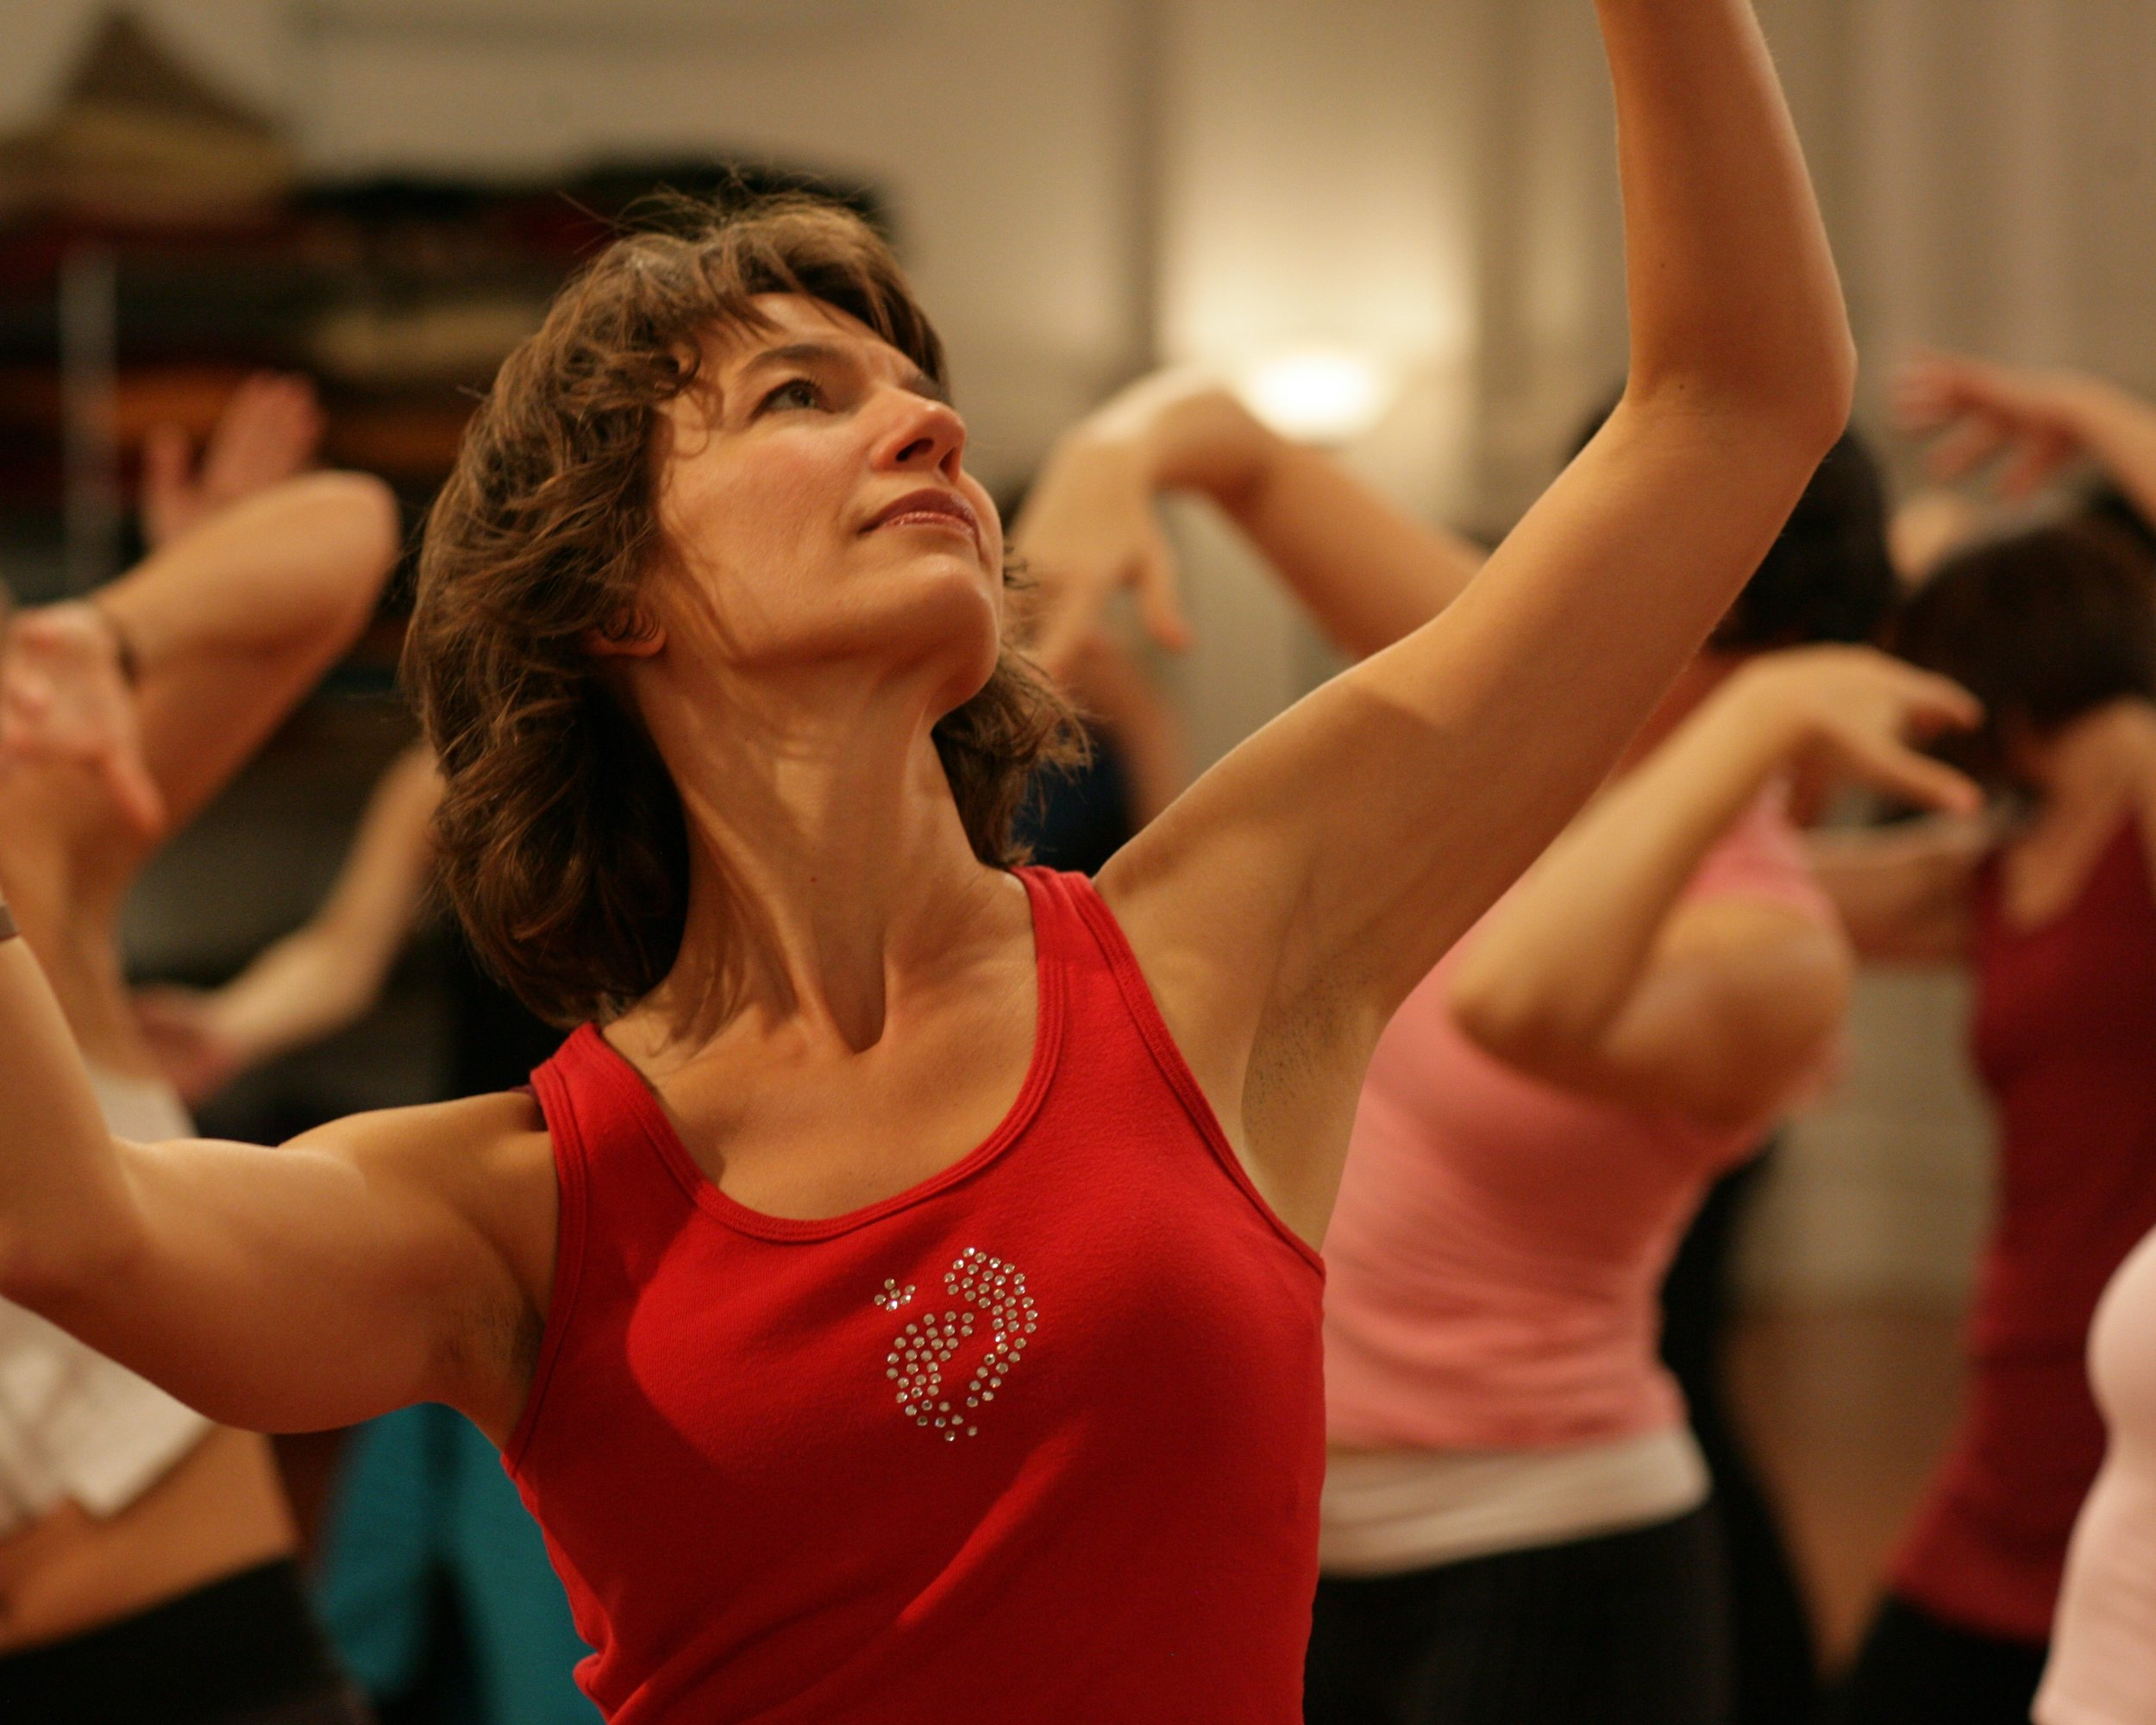 Nia - Condition your body, mind, & spirit through movement & music.2019/2020 registration options